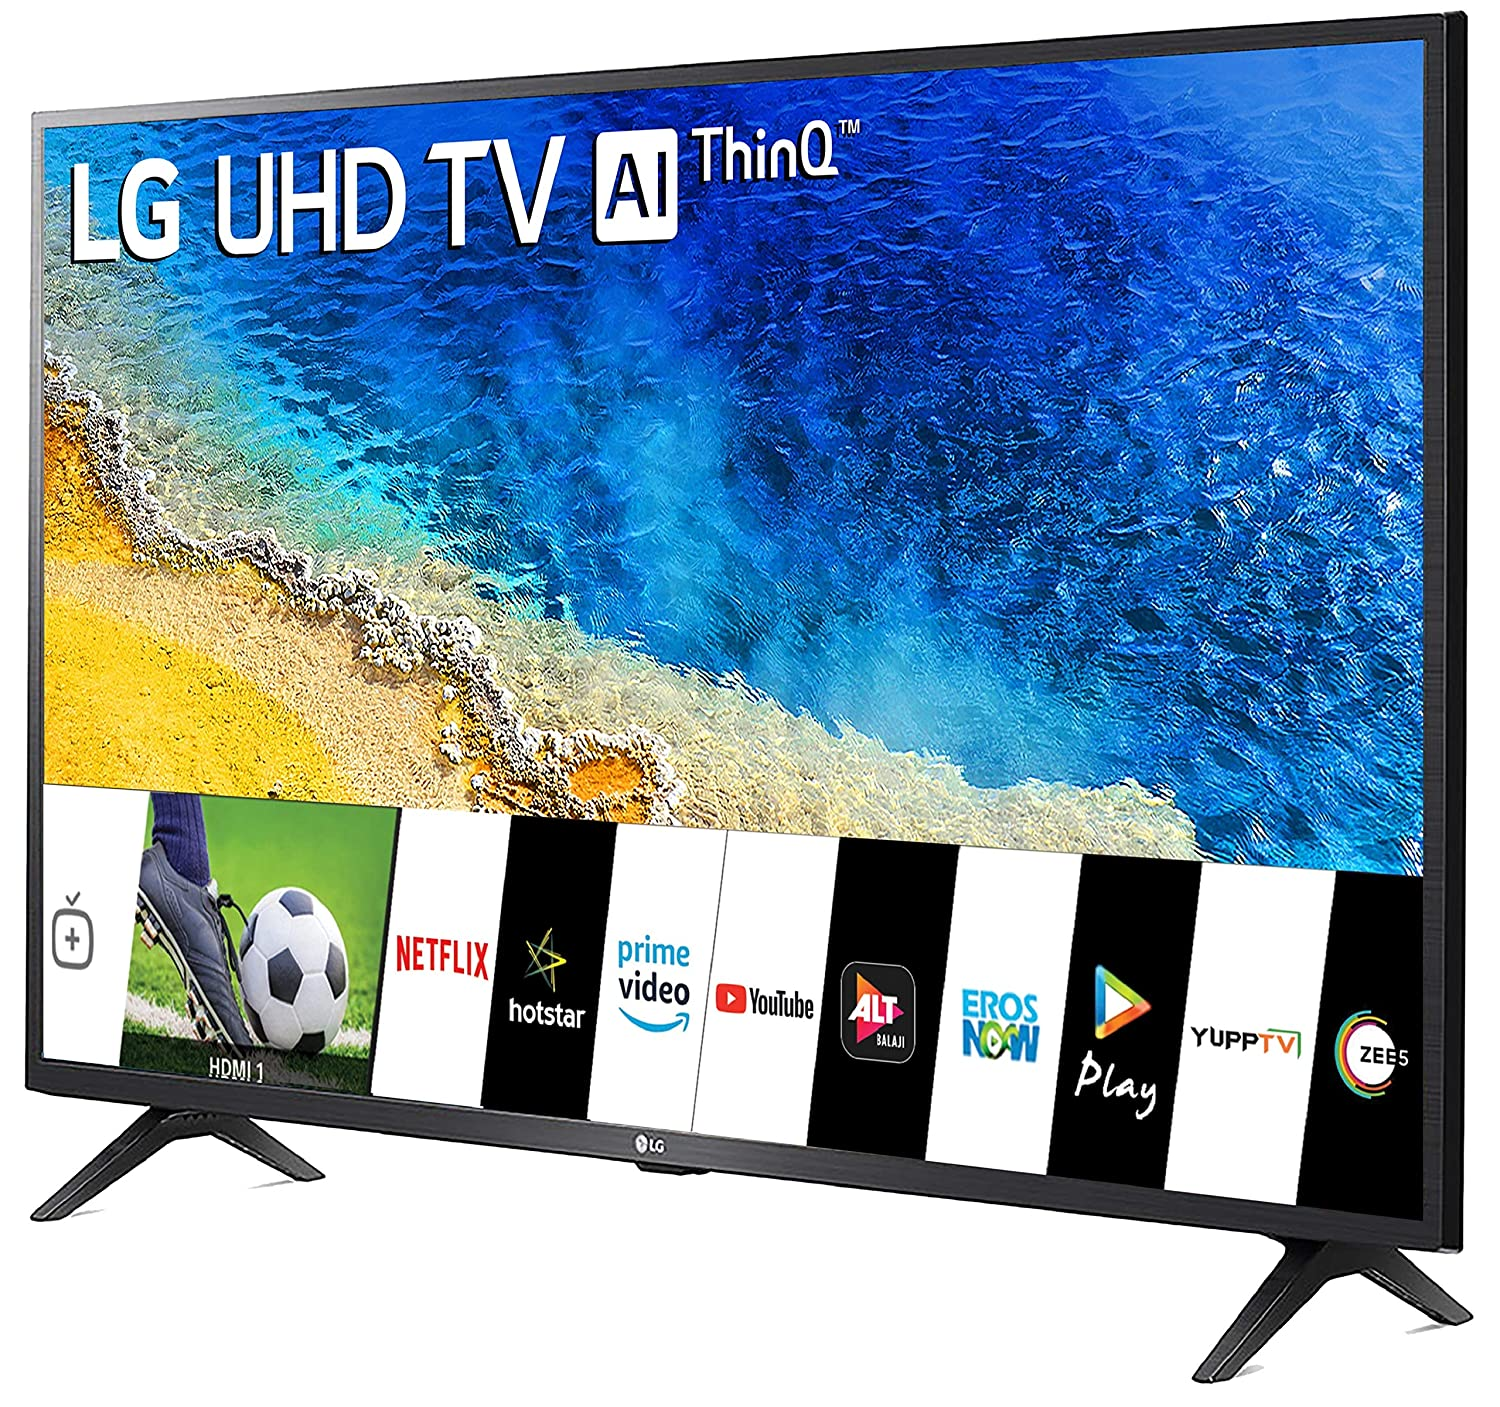 LG 108 cm (43 inches) 4K UHD Smart LED TV